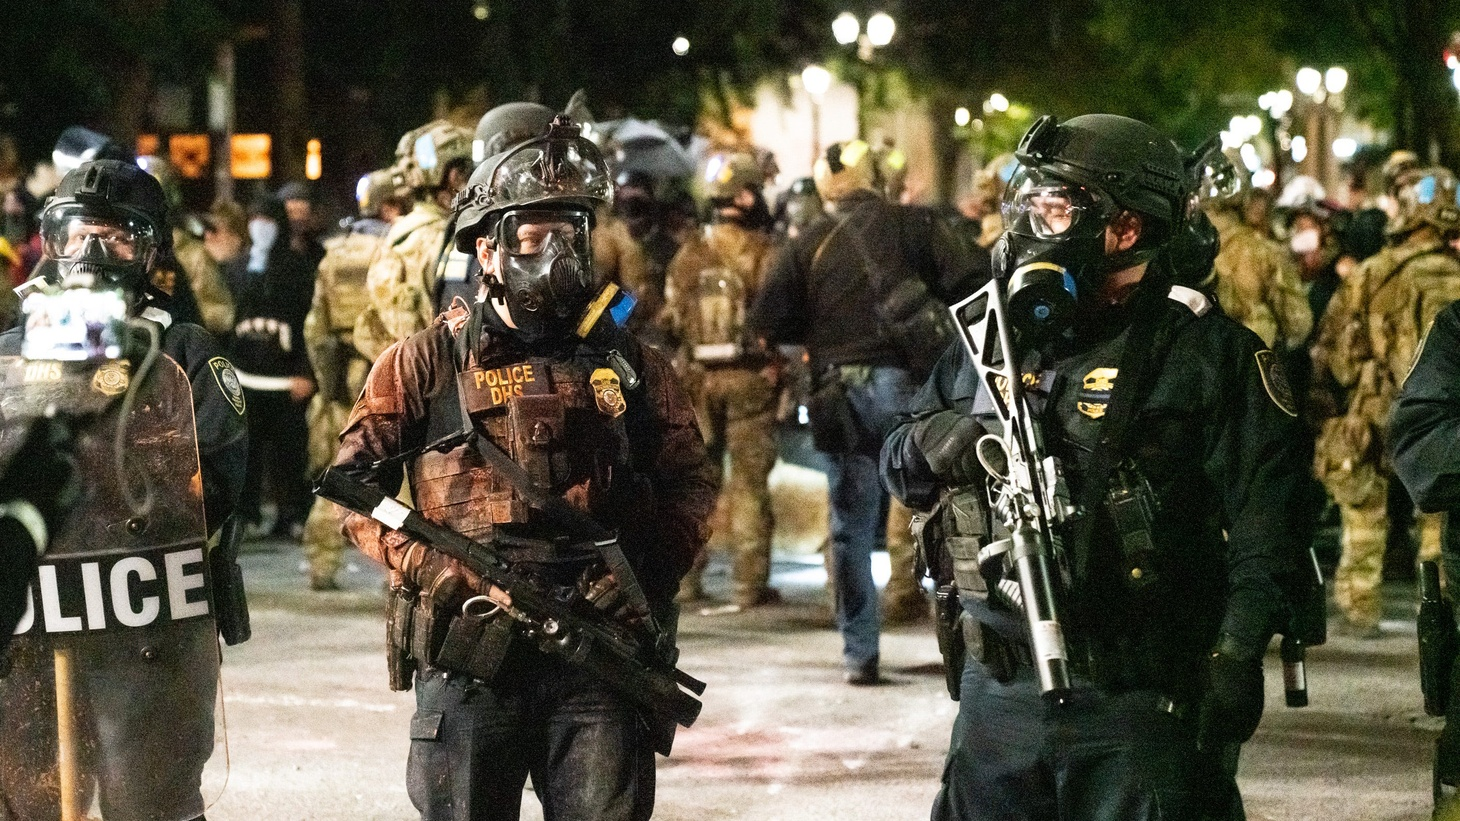 Federal agents stand outside the federal courthouse in Portland, Oregon, July 26, 2020. Their uniforms are colored red by the detonation of what appeared to be smoke or dust bombs thrown by protesters.